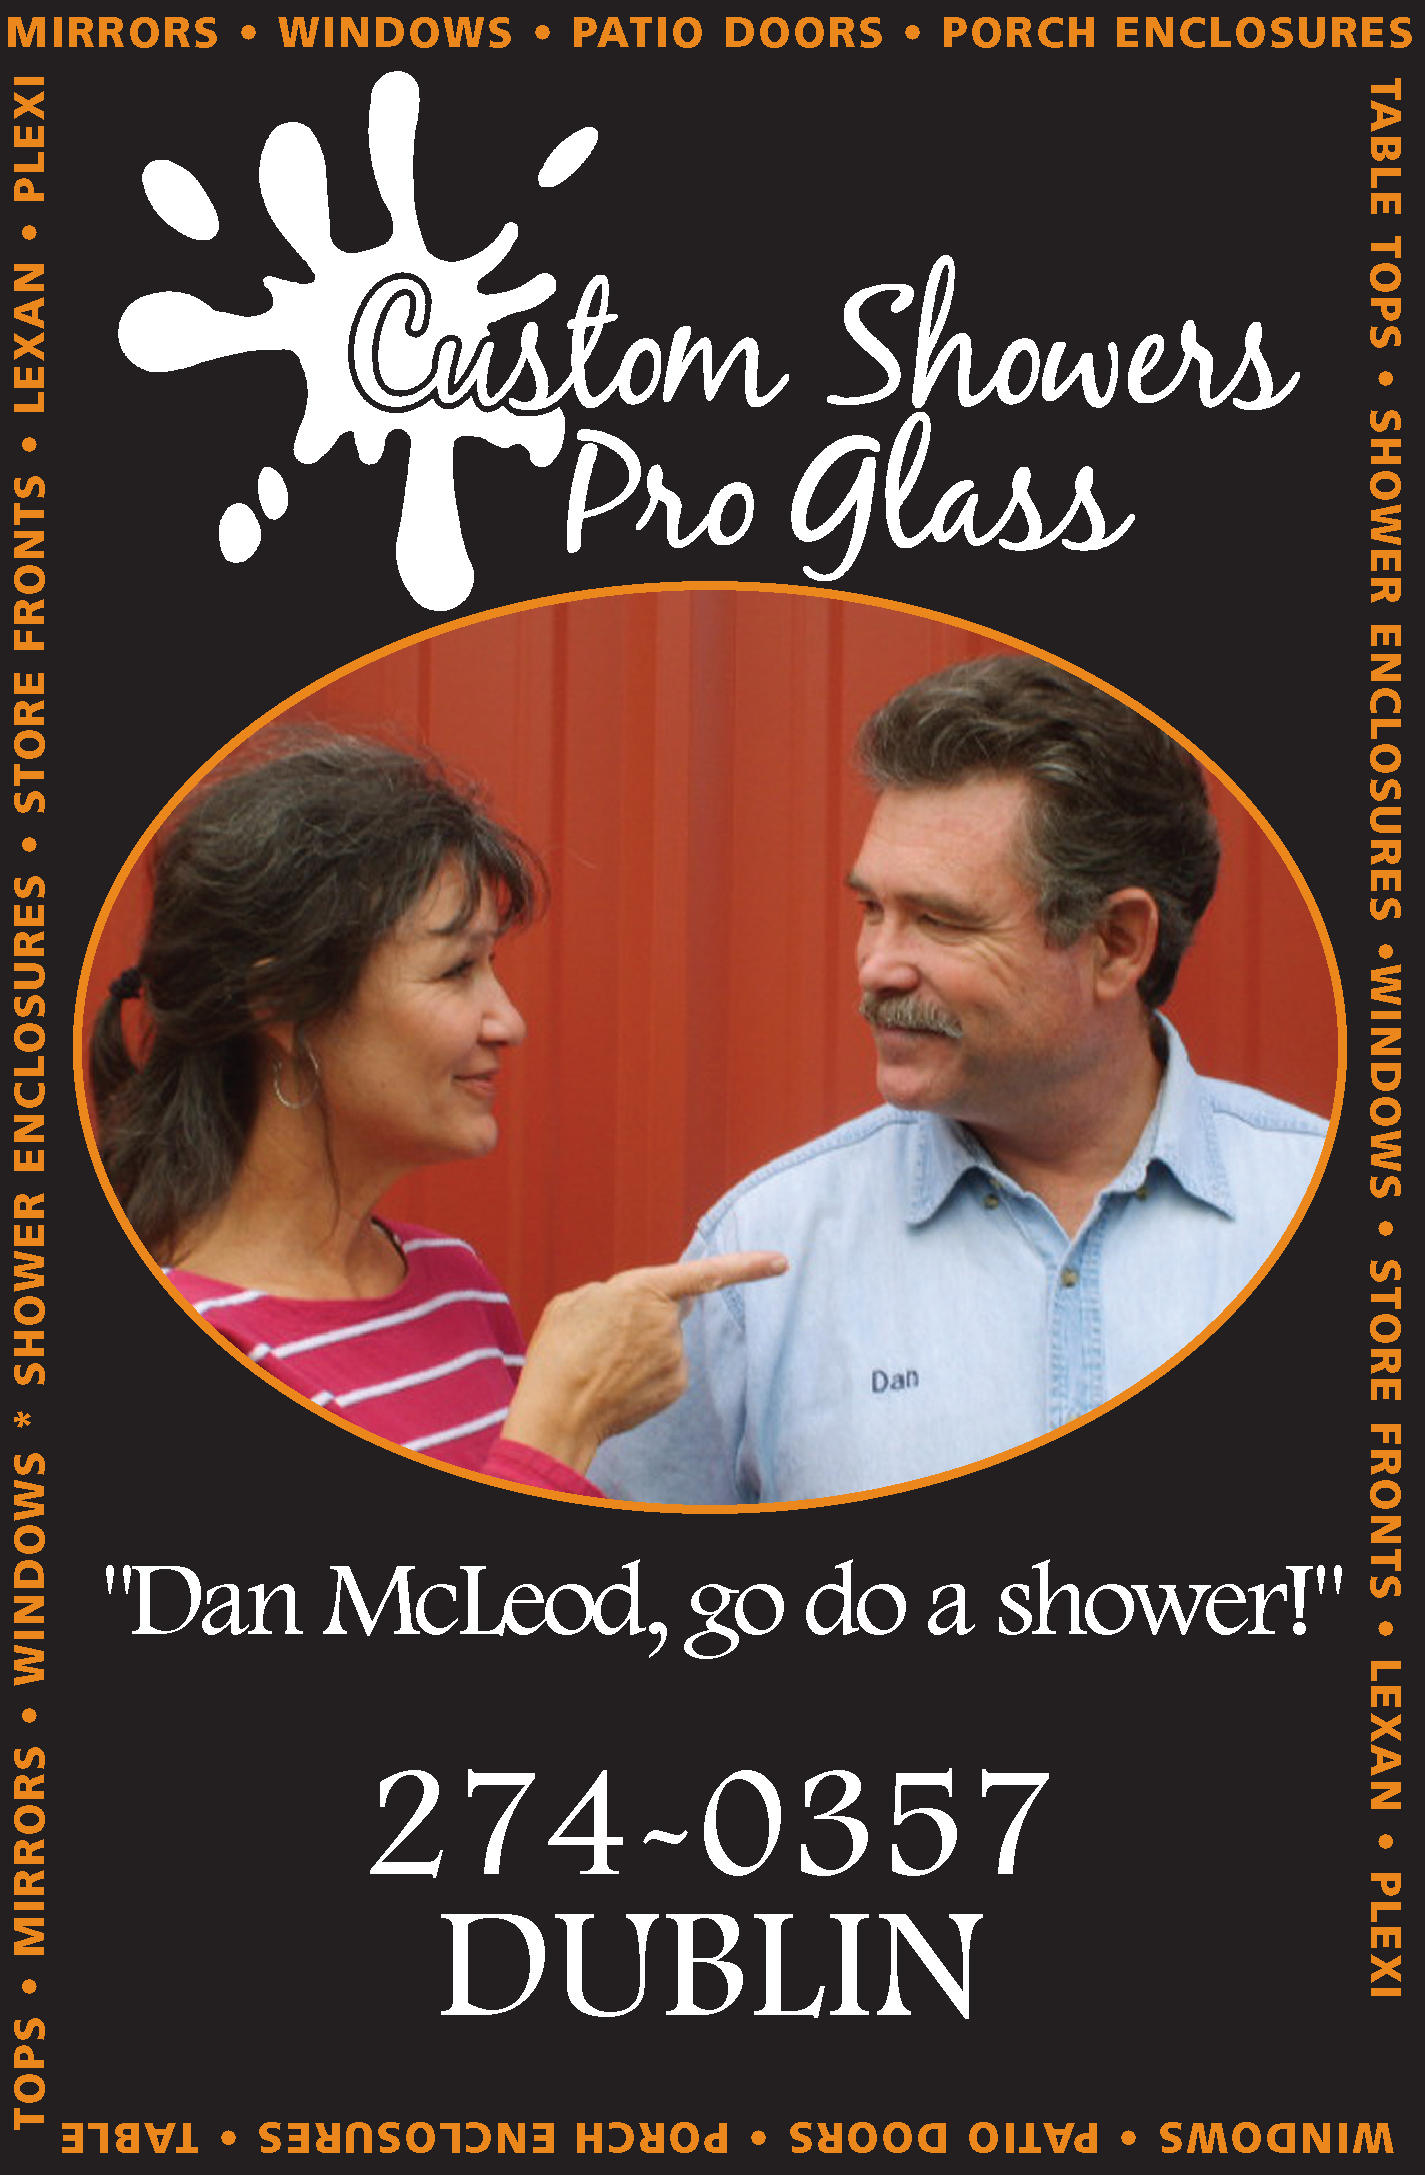 Custom Showers Pro Glass 704 Industrial Blvd, Dublin, GA